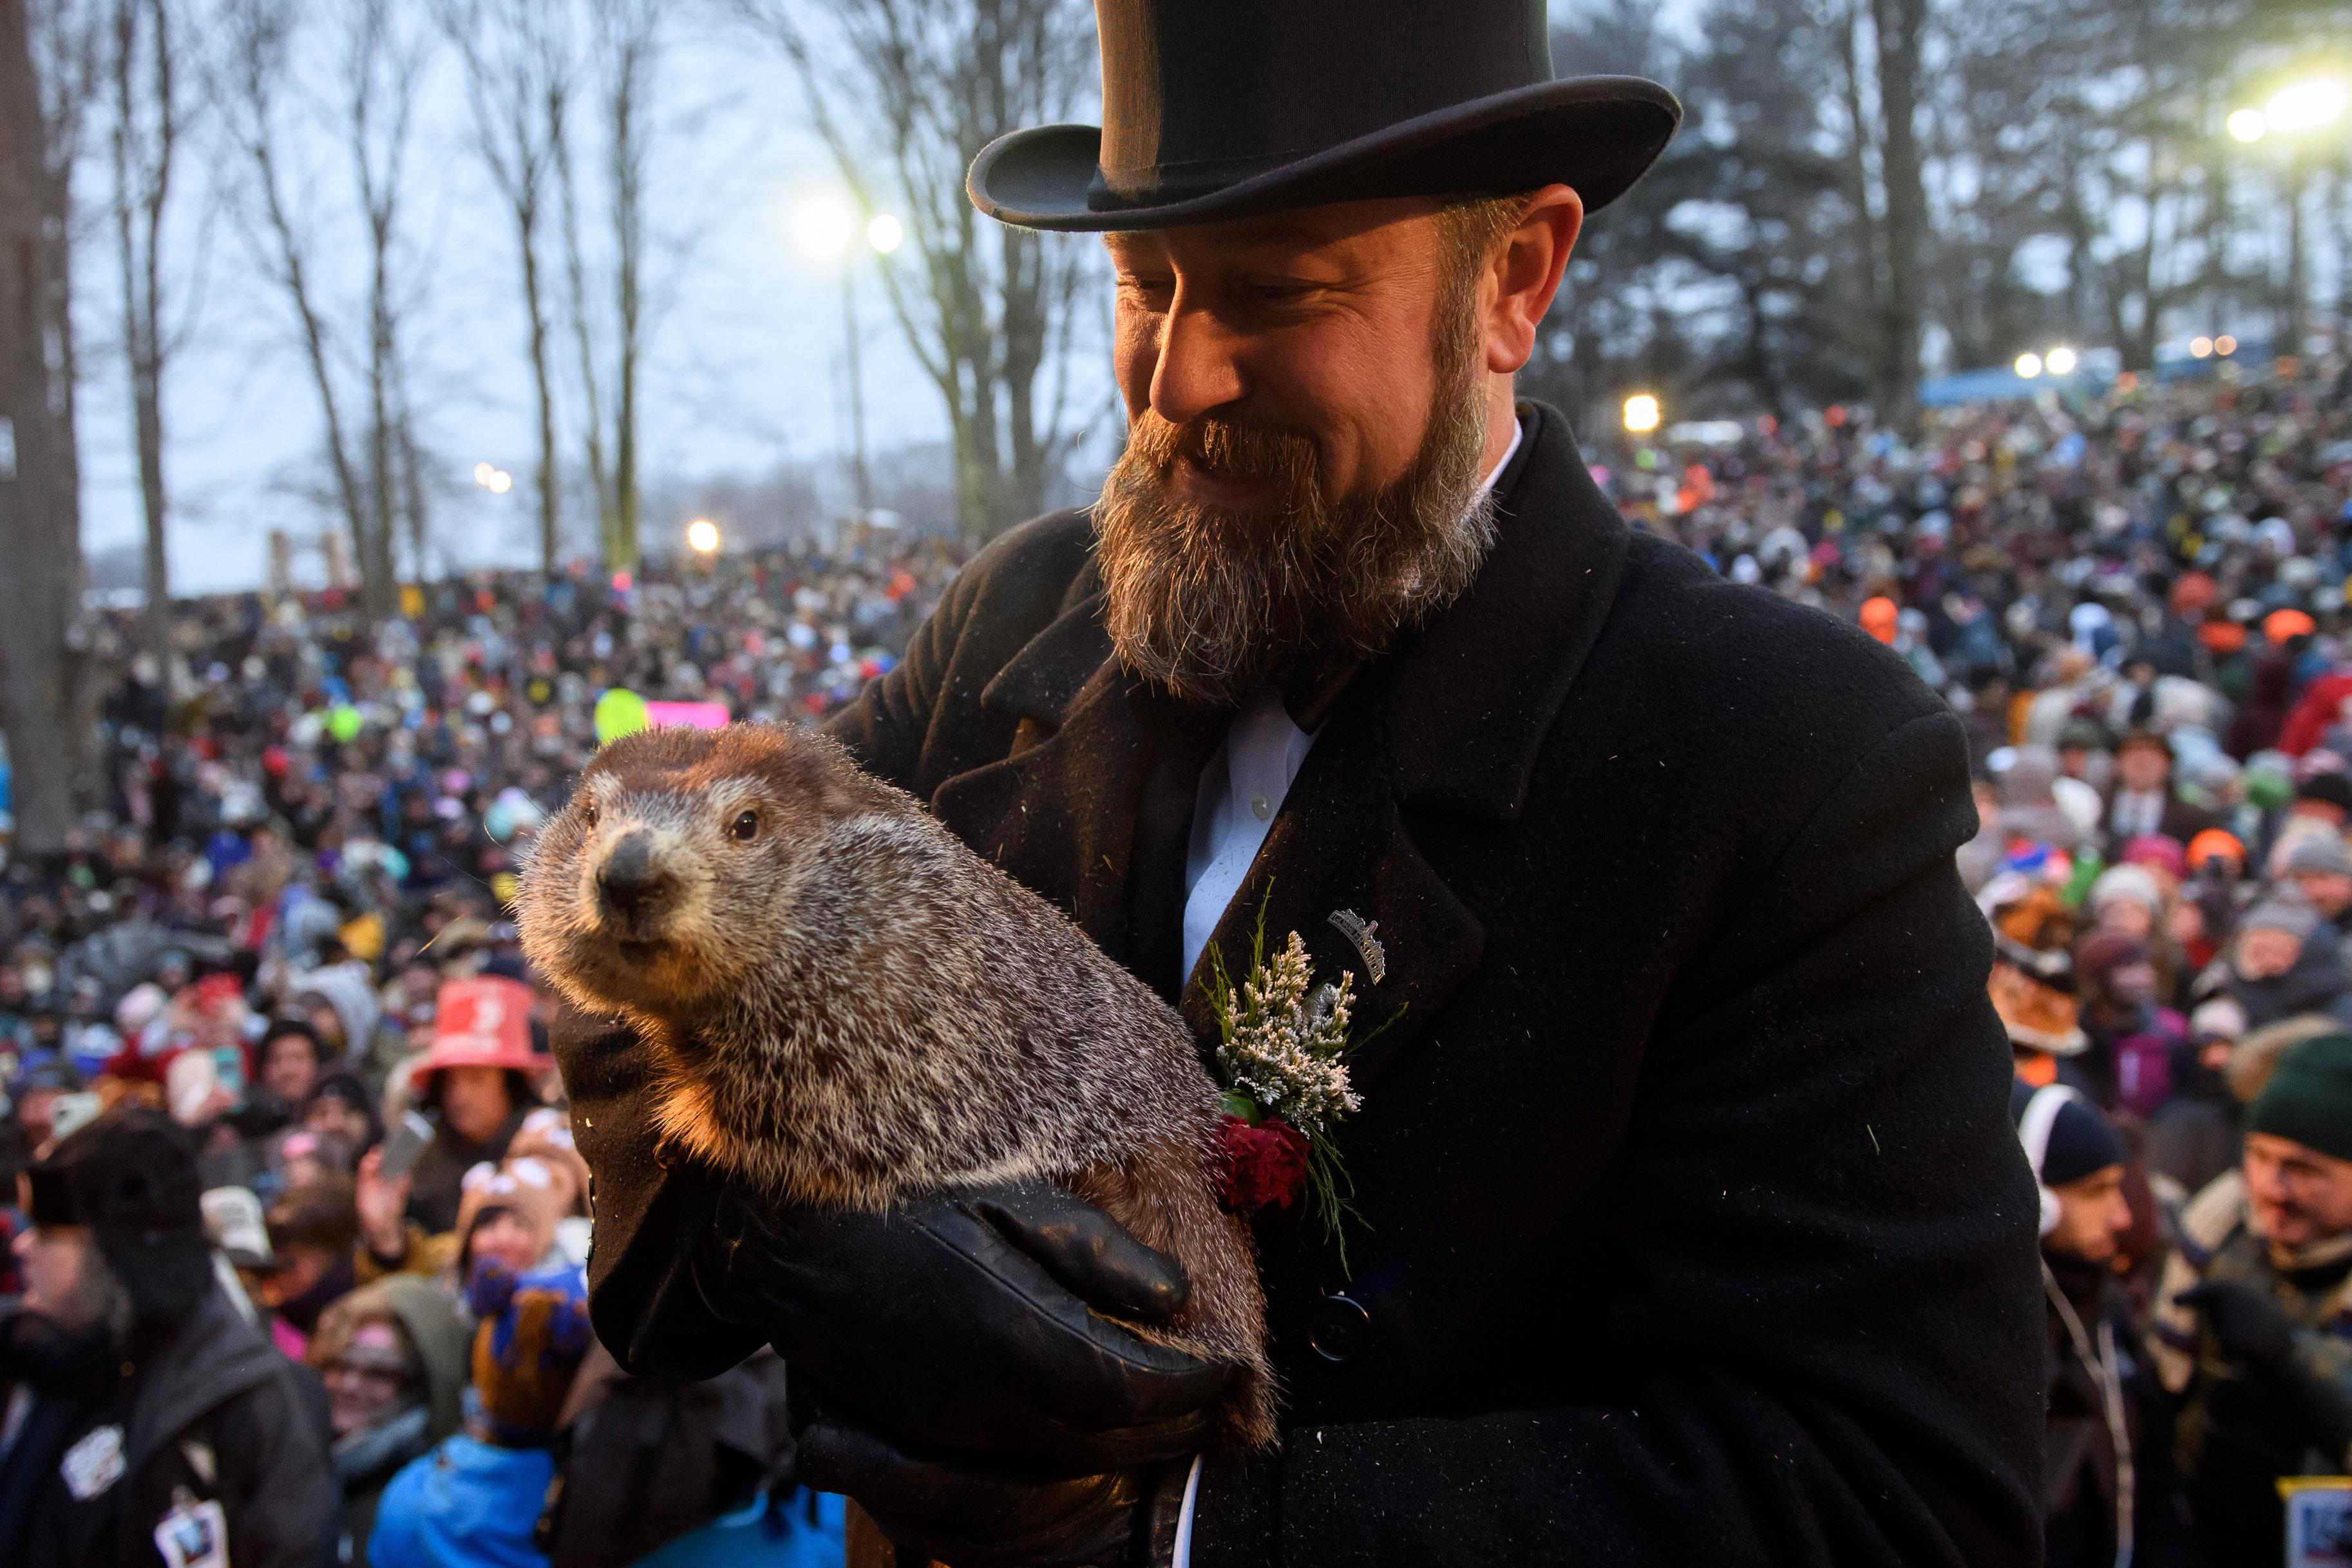 Handler AJ Dereume holds Punxsutawney Phil after he did not see his shadow predicting an early spring during the 133rd annual Groundhog Day festivities on February 2, 2019 in Punxsutawney, Pennsylvania.